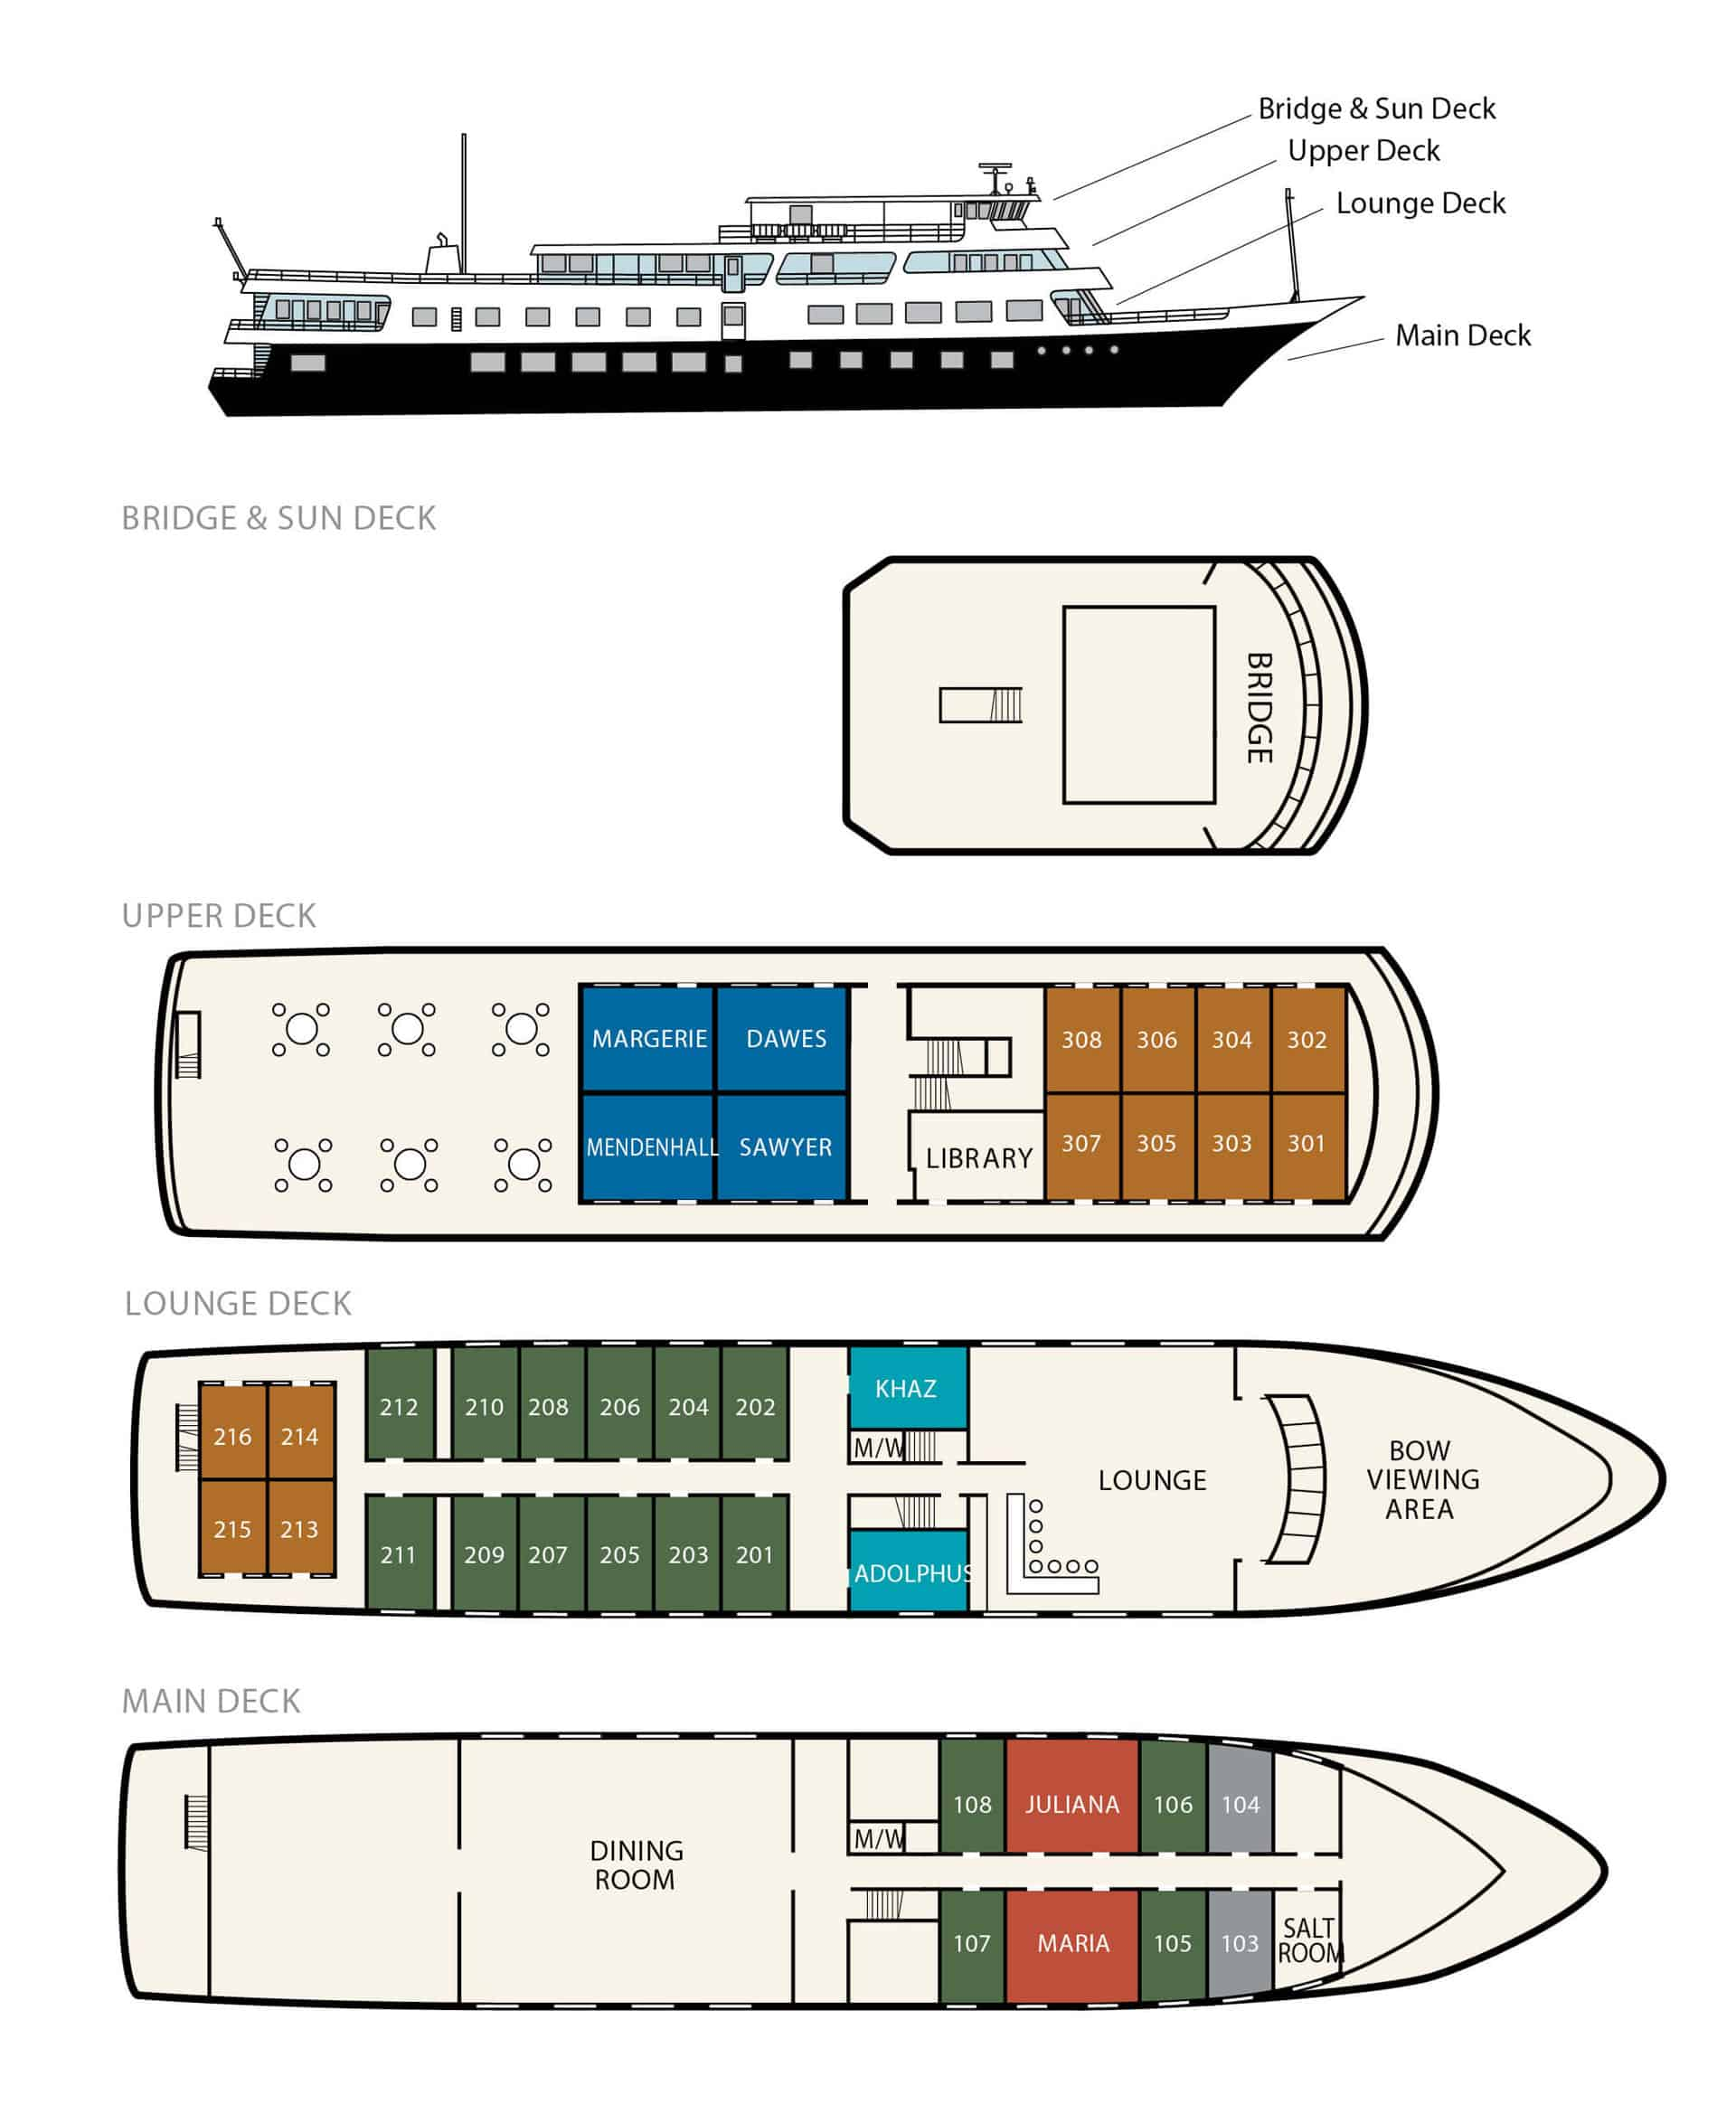 Chichagof Dream deck plan showing main, lounge, upper, bridge, and sun decks.